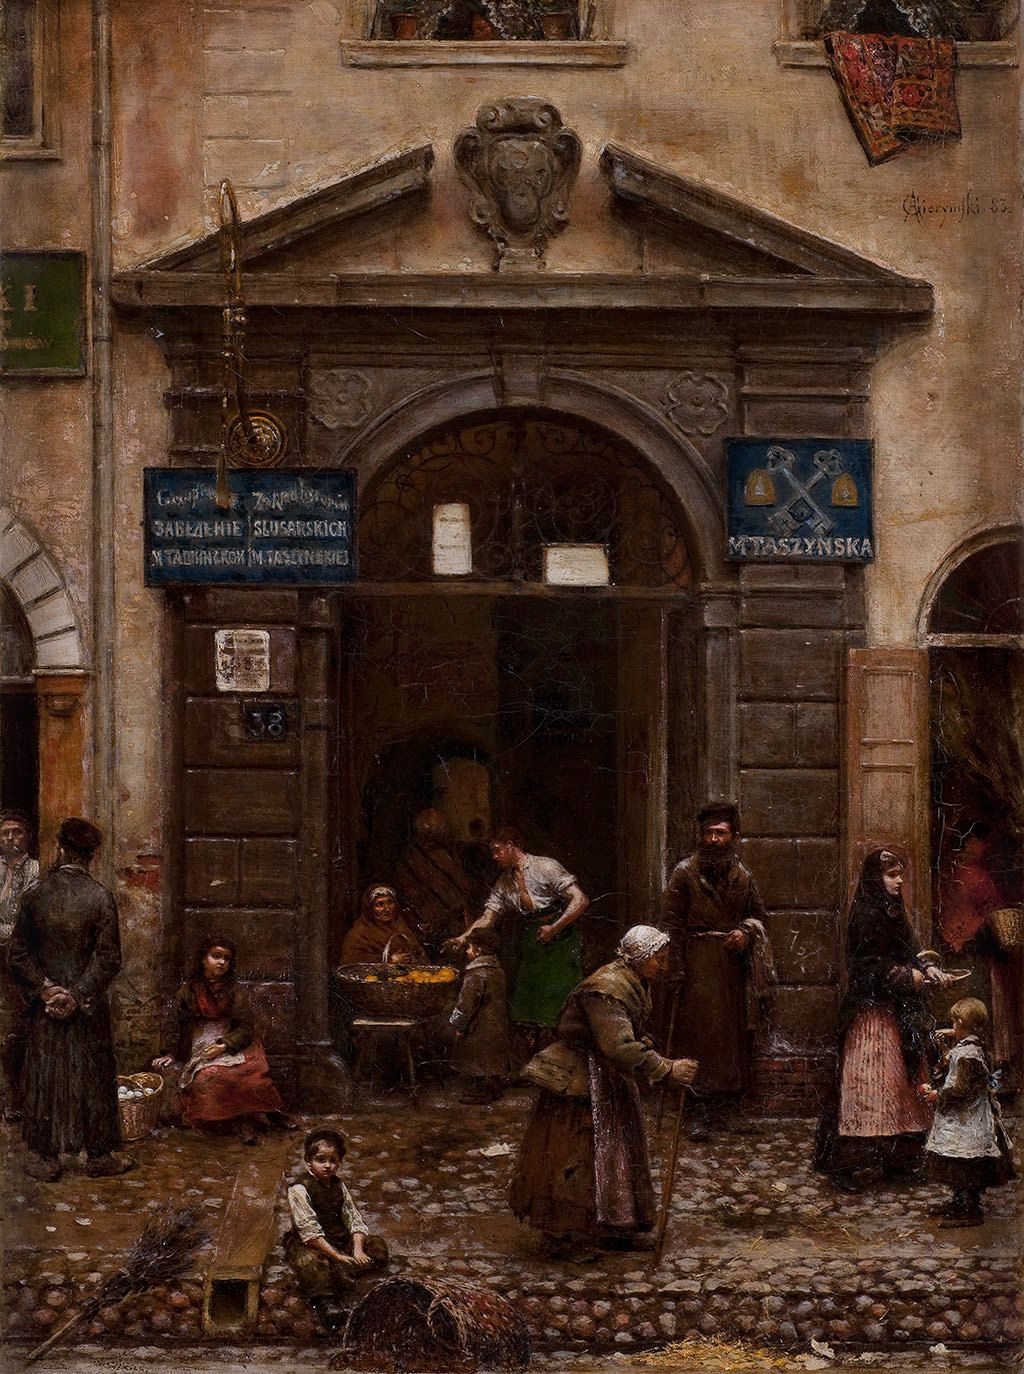 Alexander Gerymski. In the old town